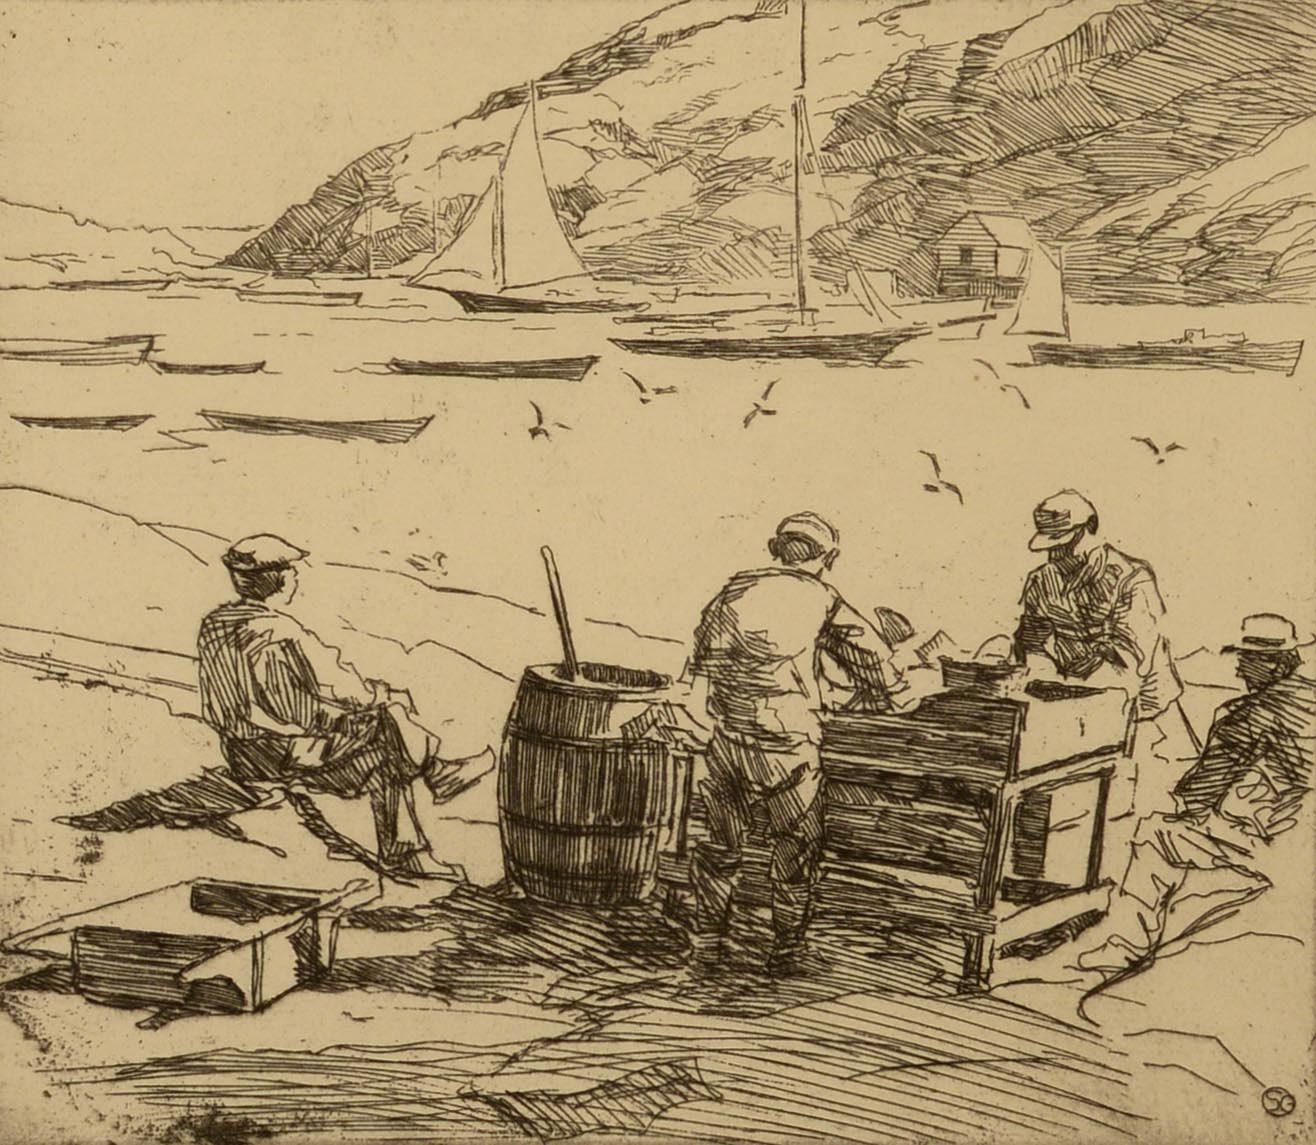 Sears Gallagher Cleaning Fish, Monhegan Harbor